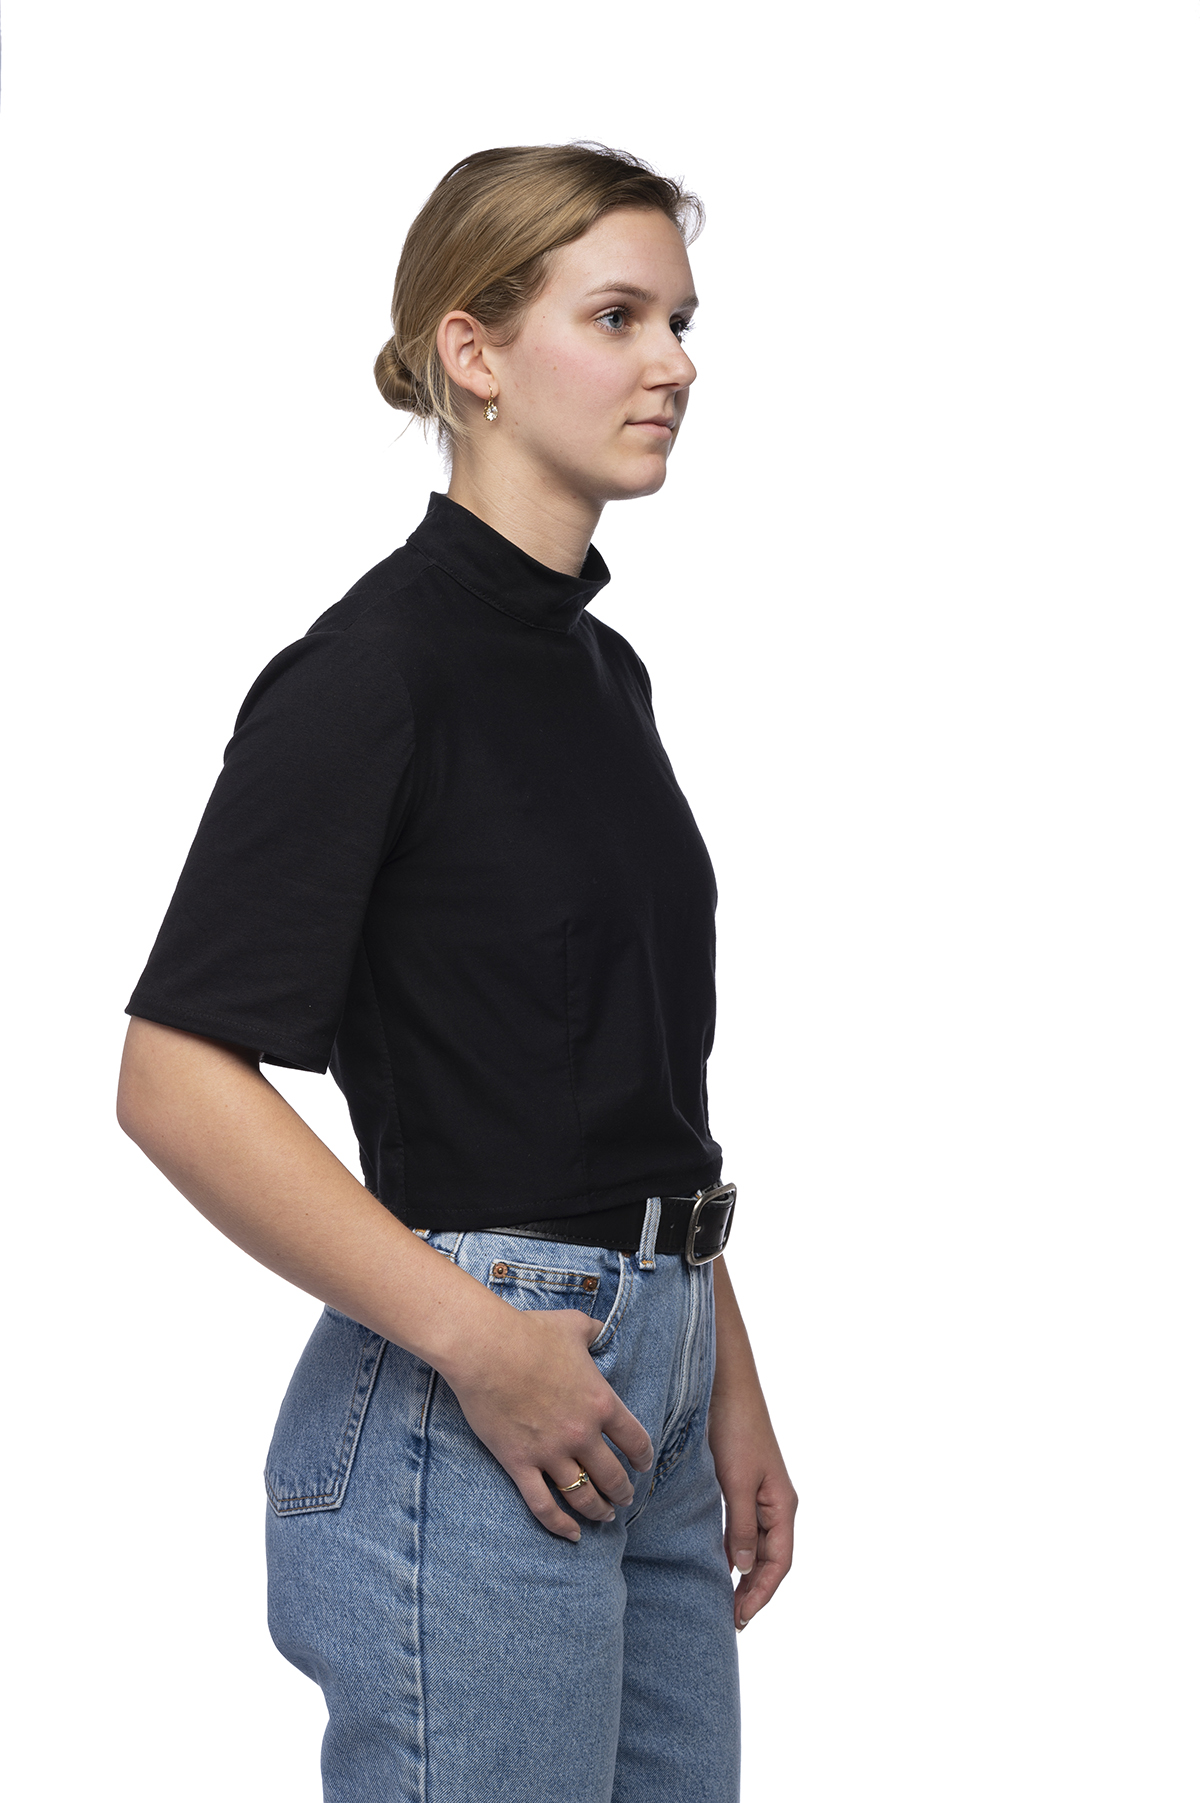 Functional clothing design of a black top tucked into denim jeans.